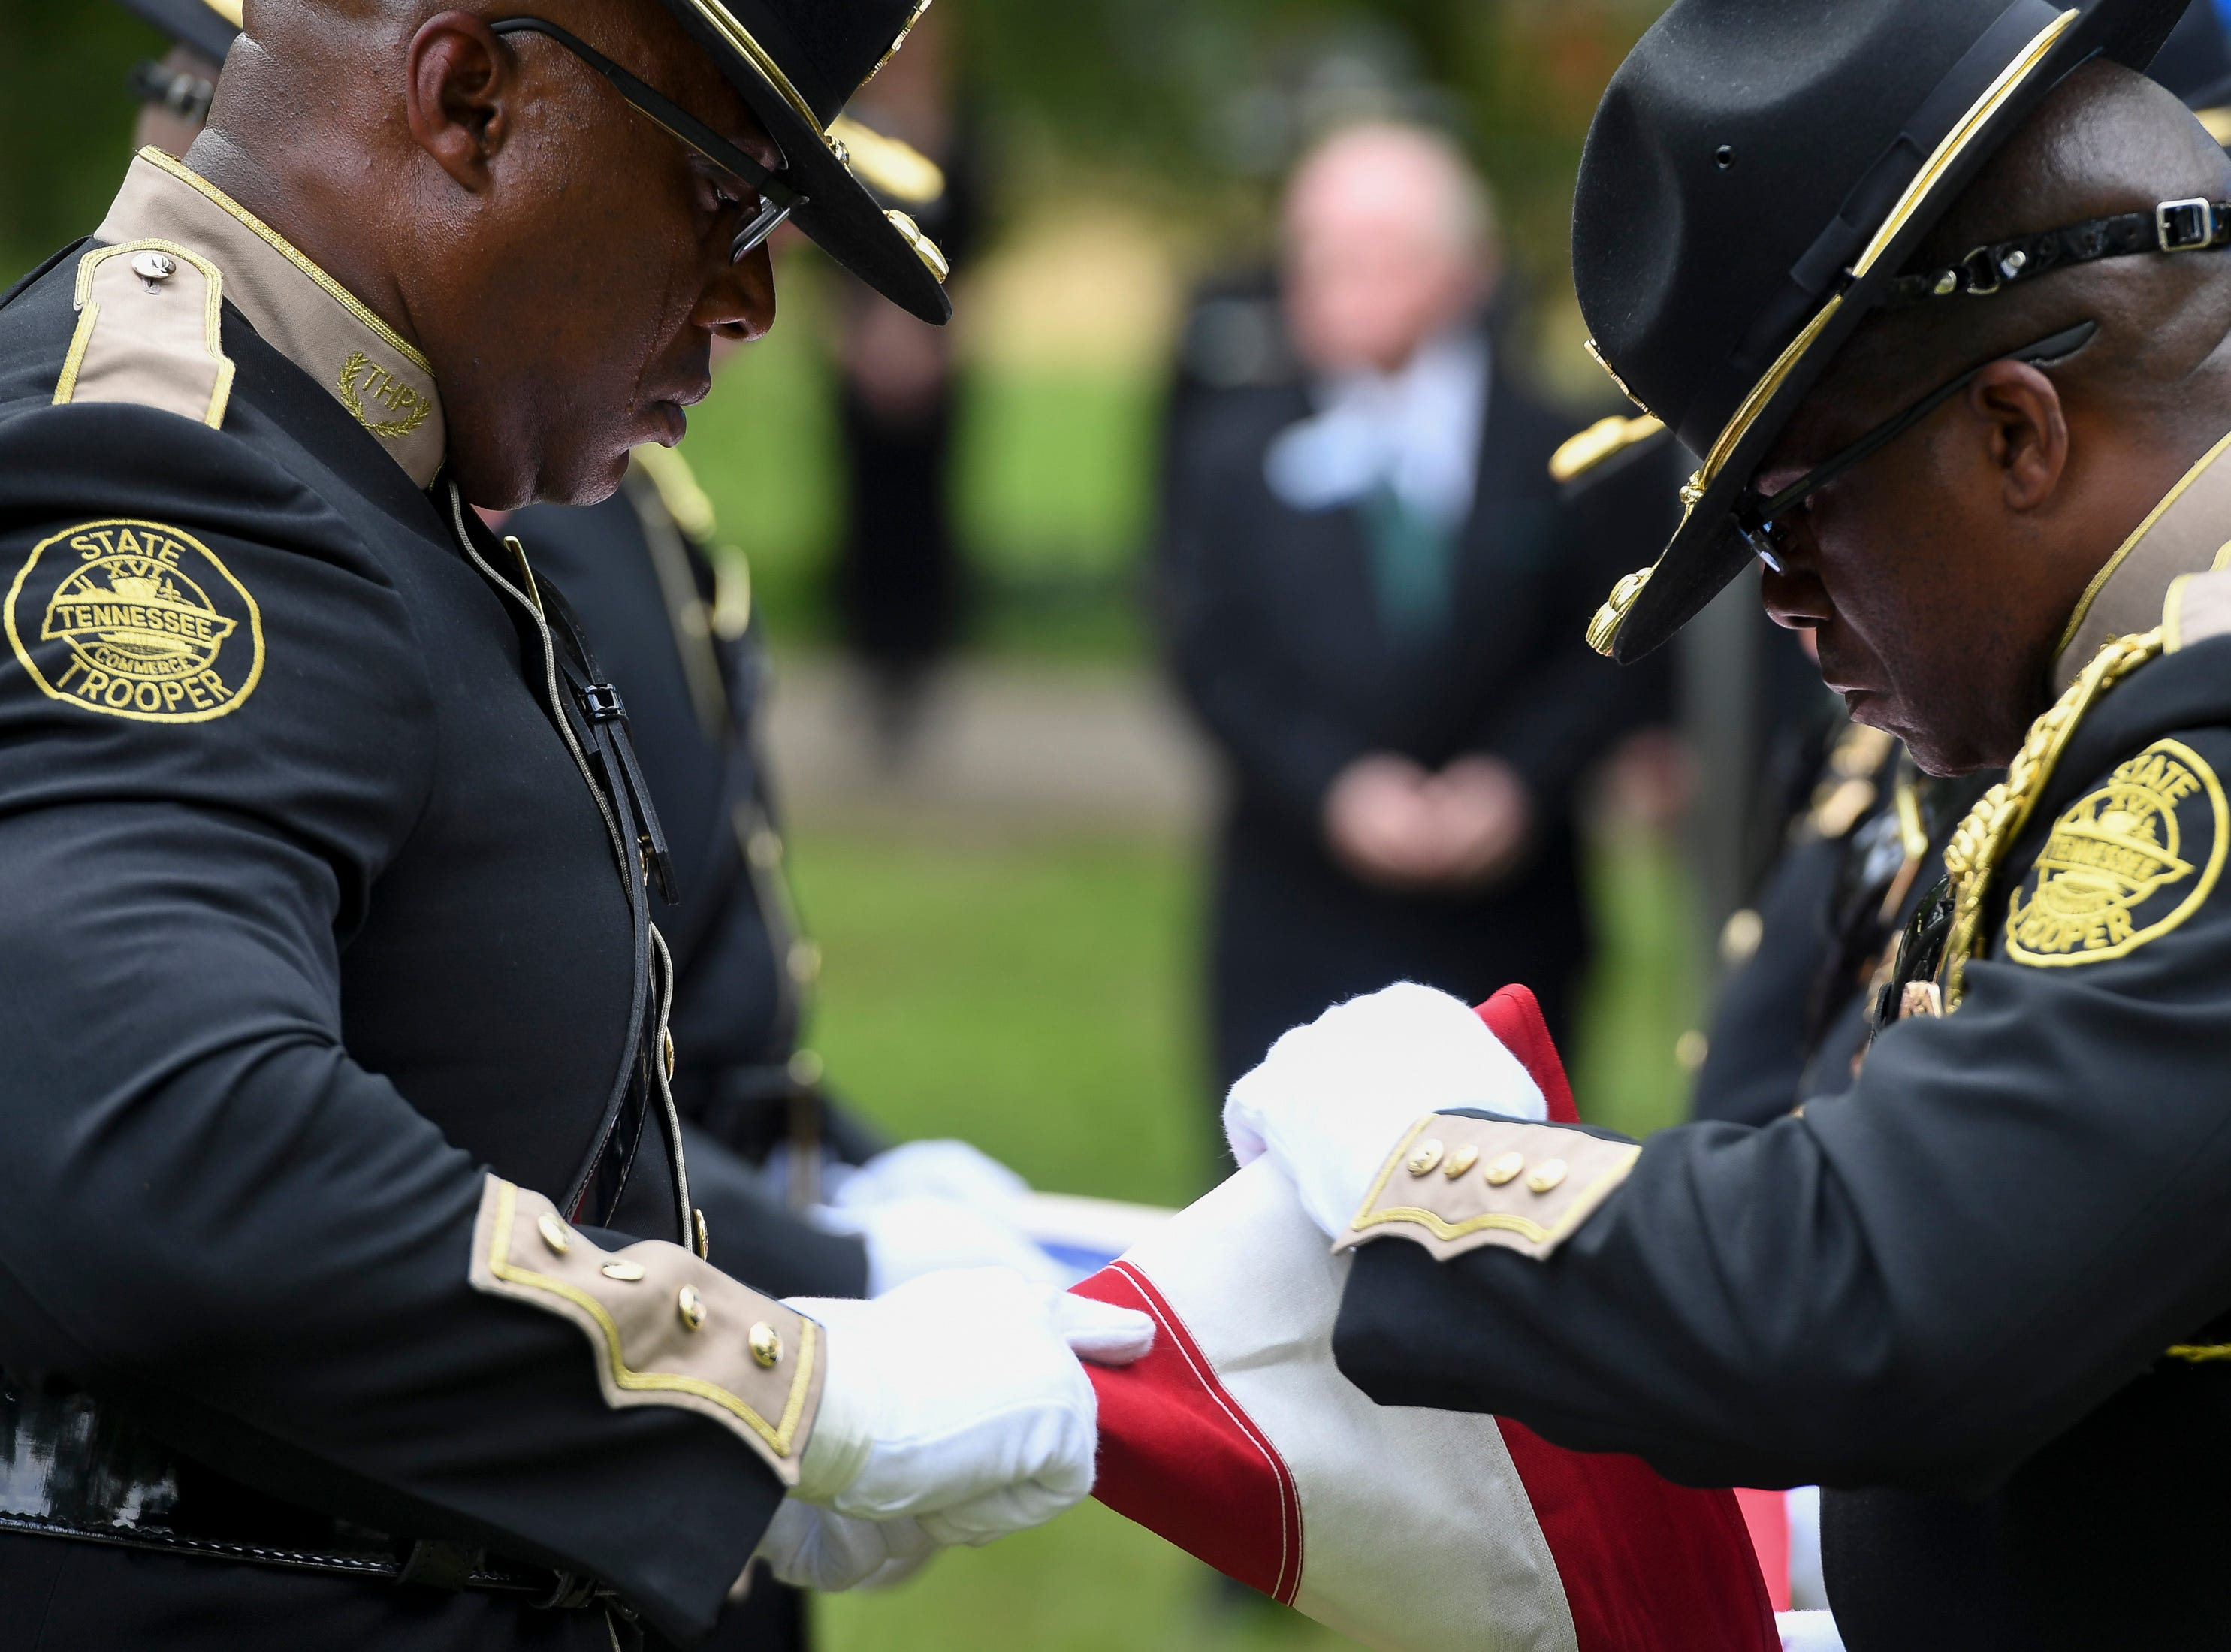 The honor guard folds the flag during the burial of Tennessee State Trooper Matthew Gatti at Ridgecrest Cemetery in Jackson, Tenn., Monday, May 13, 2019. Gatti died in the line of duty in an accident while responding to a car fire on I-40 in Madison County on May 6.